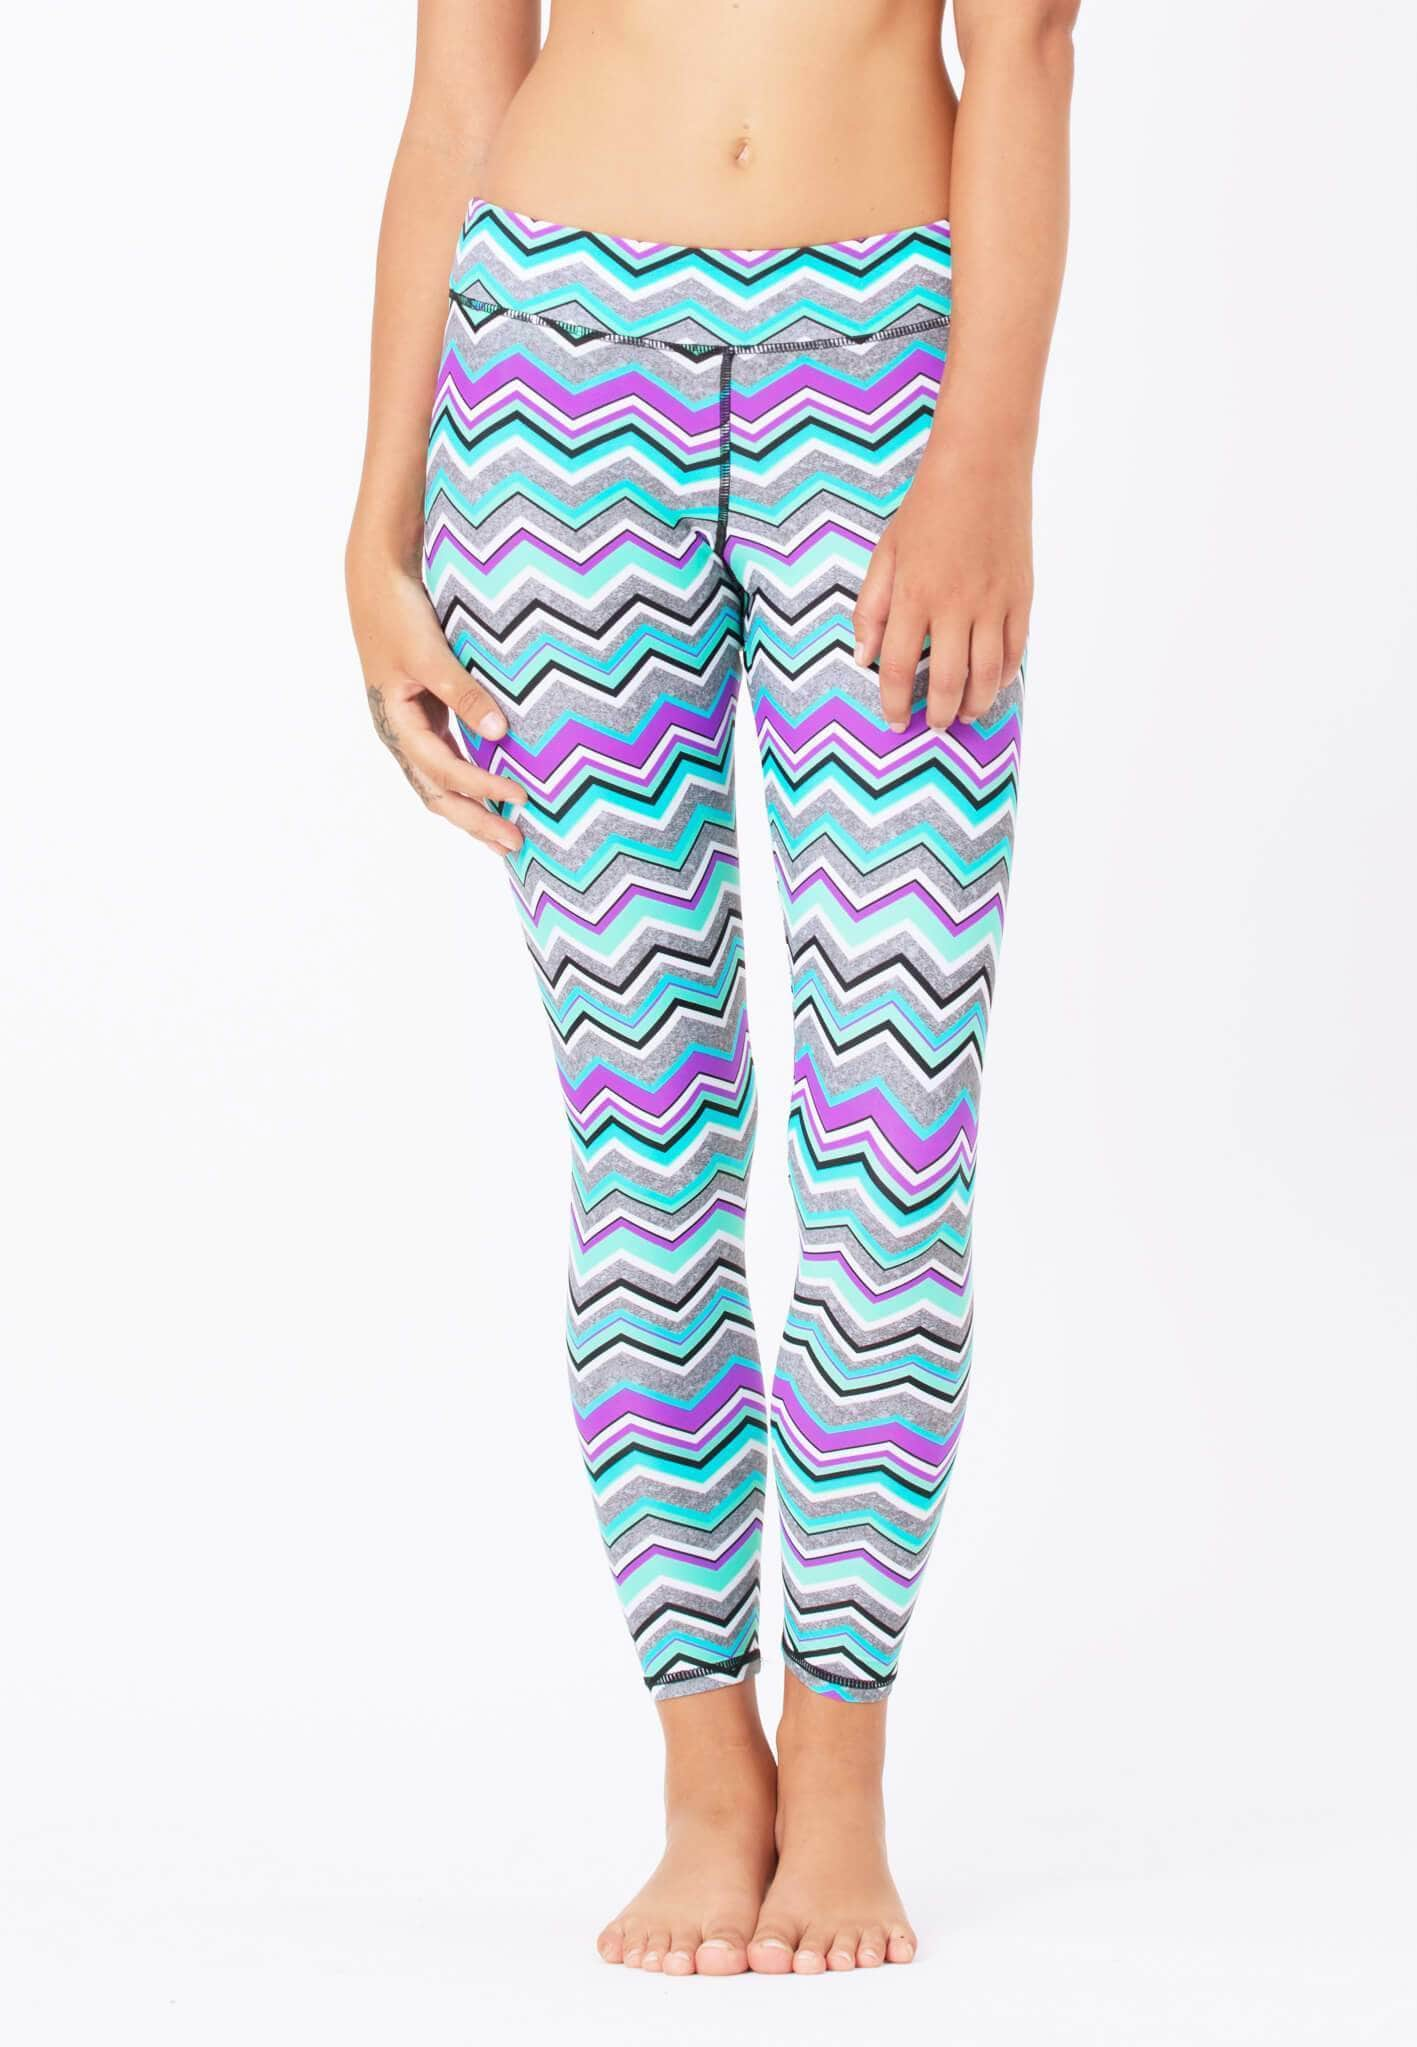 FUNFIT Swim Tights in Solstice Chevron Print (XS - 2XL)